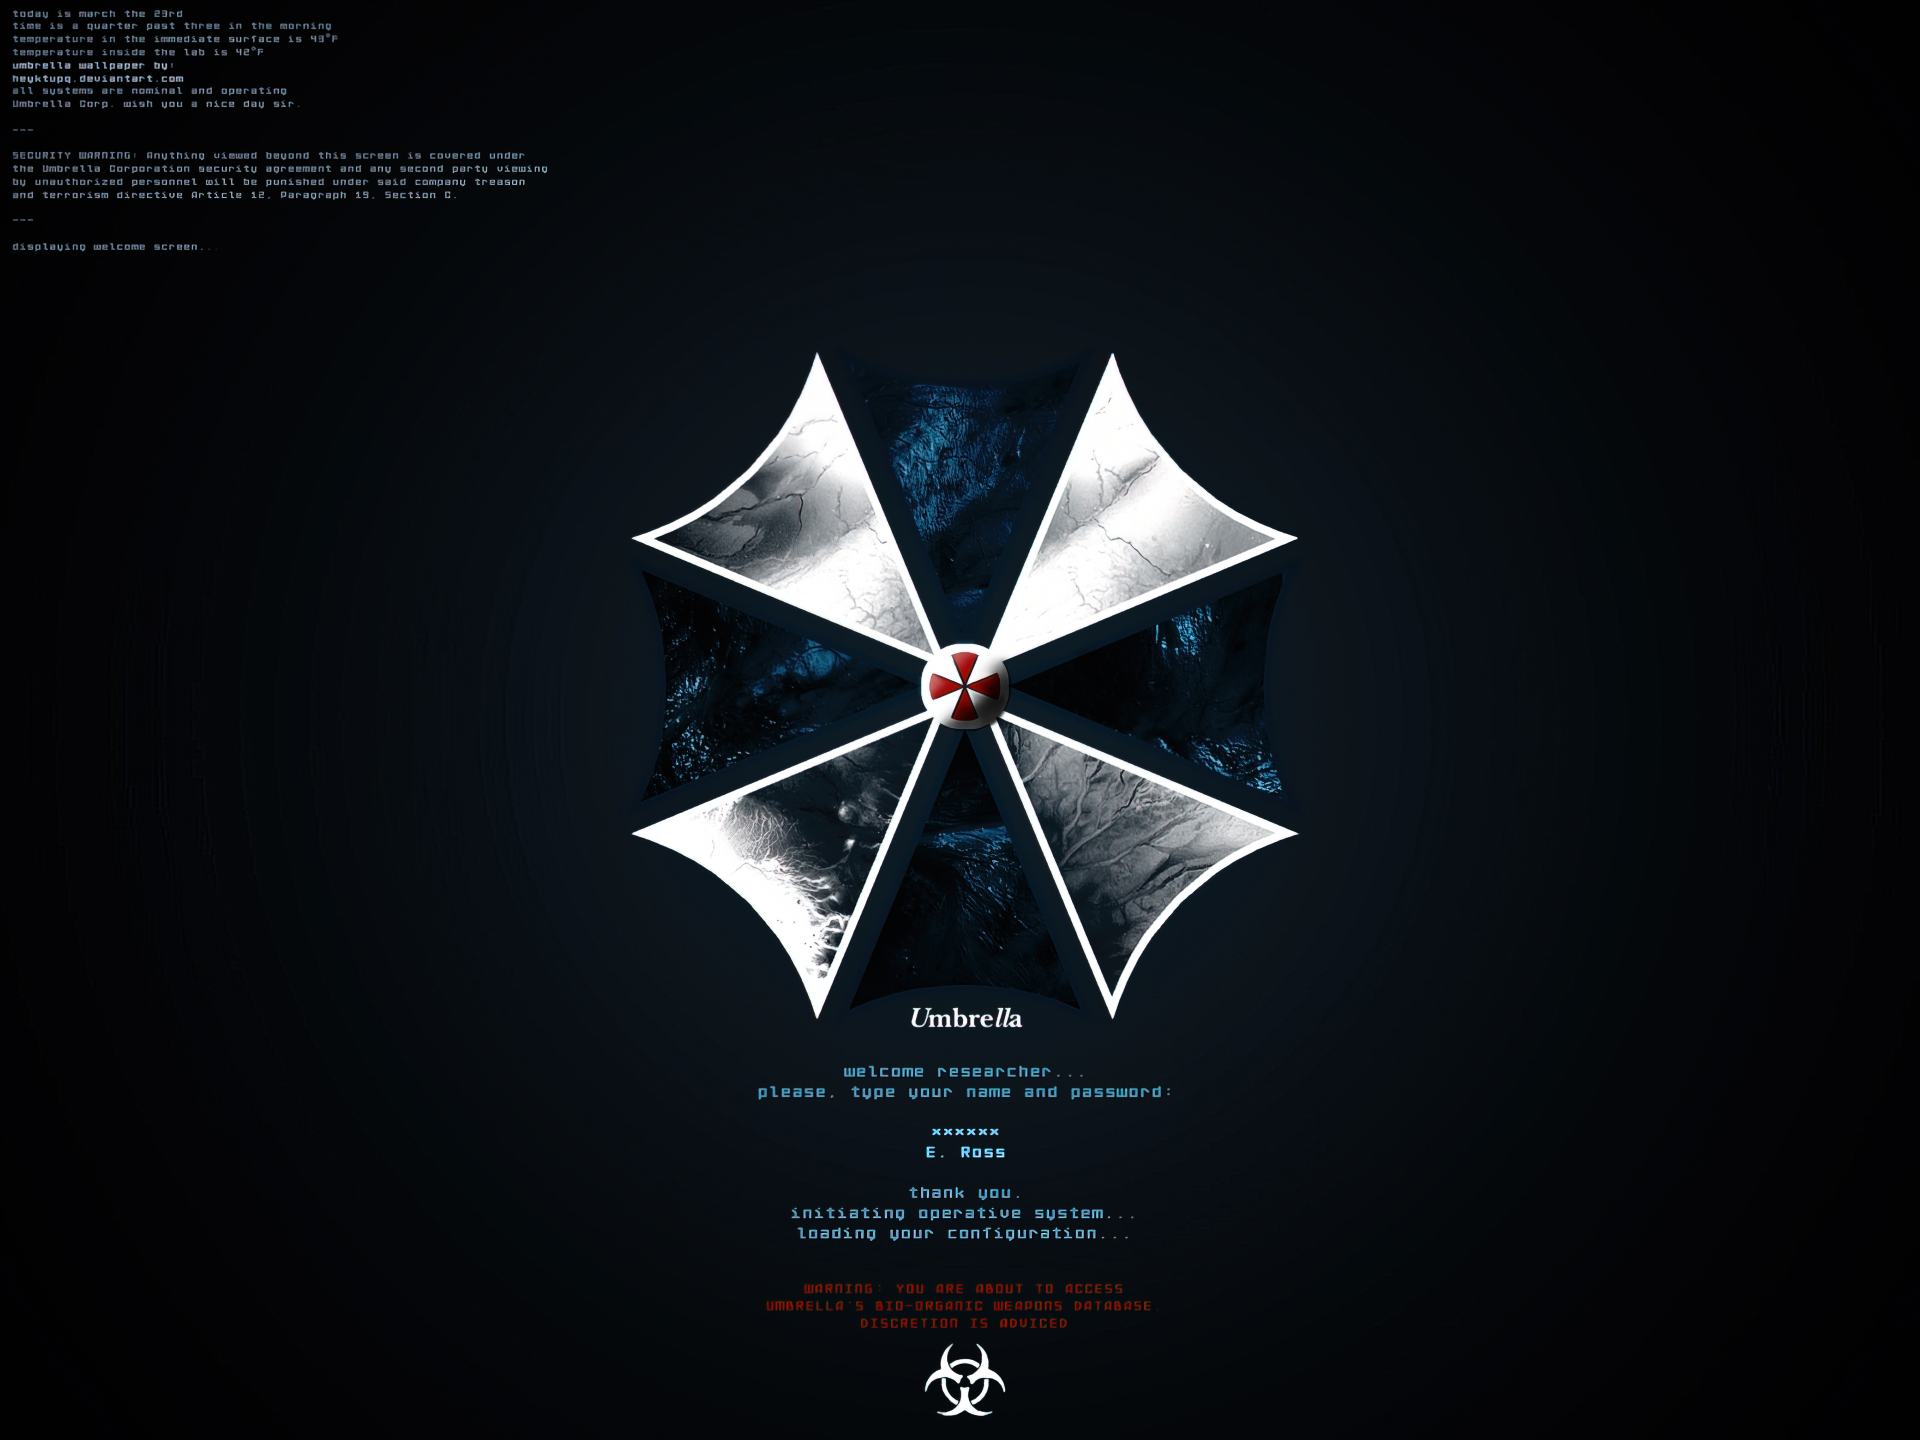 Resident evil wallpaper and background image 1600x1200 - Umbrella corporation wallpaper hd 1366x768 ...